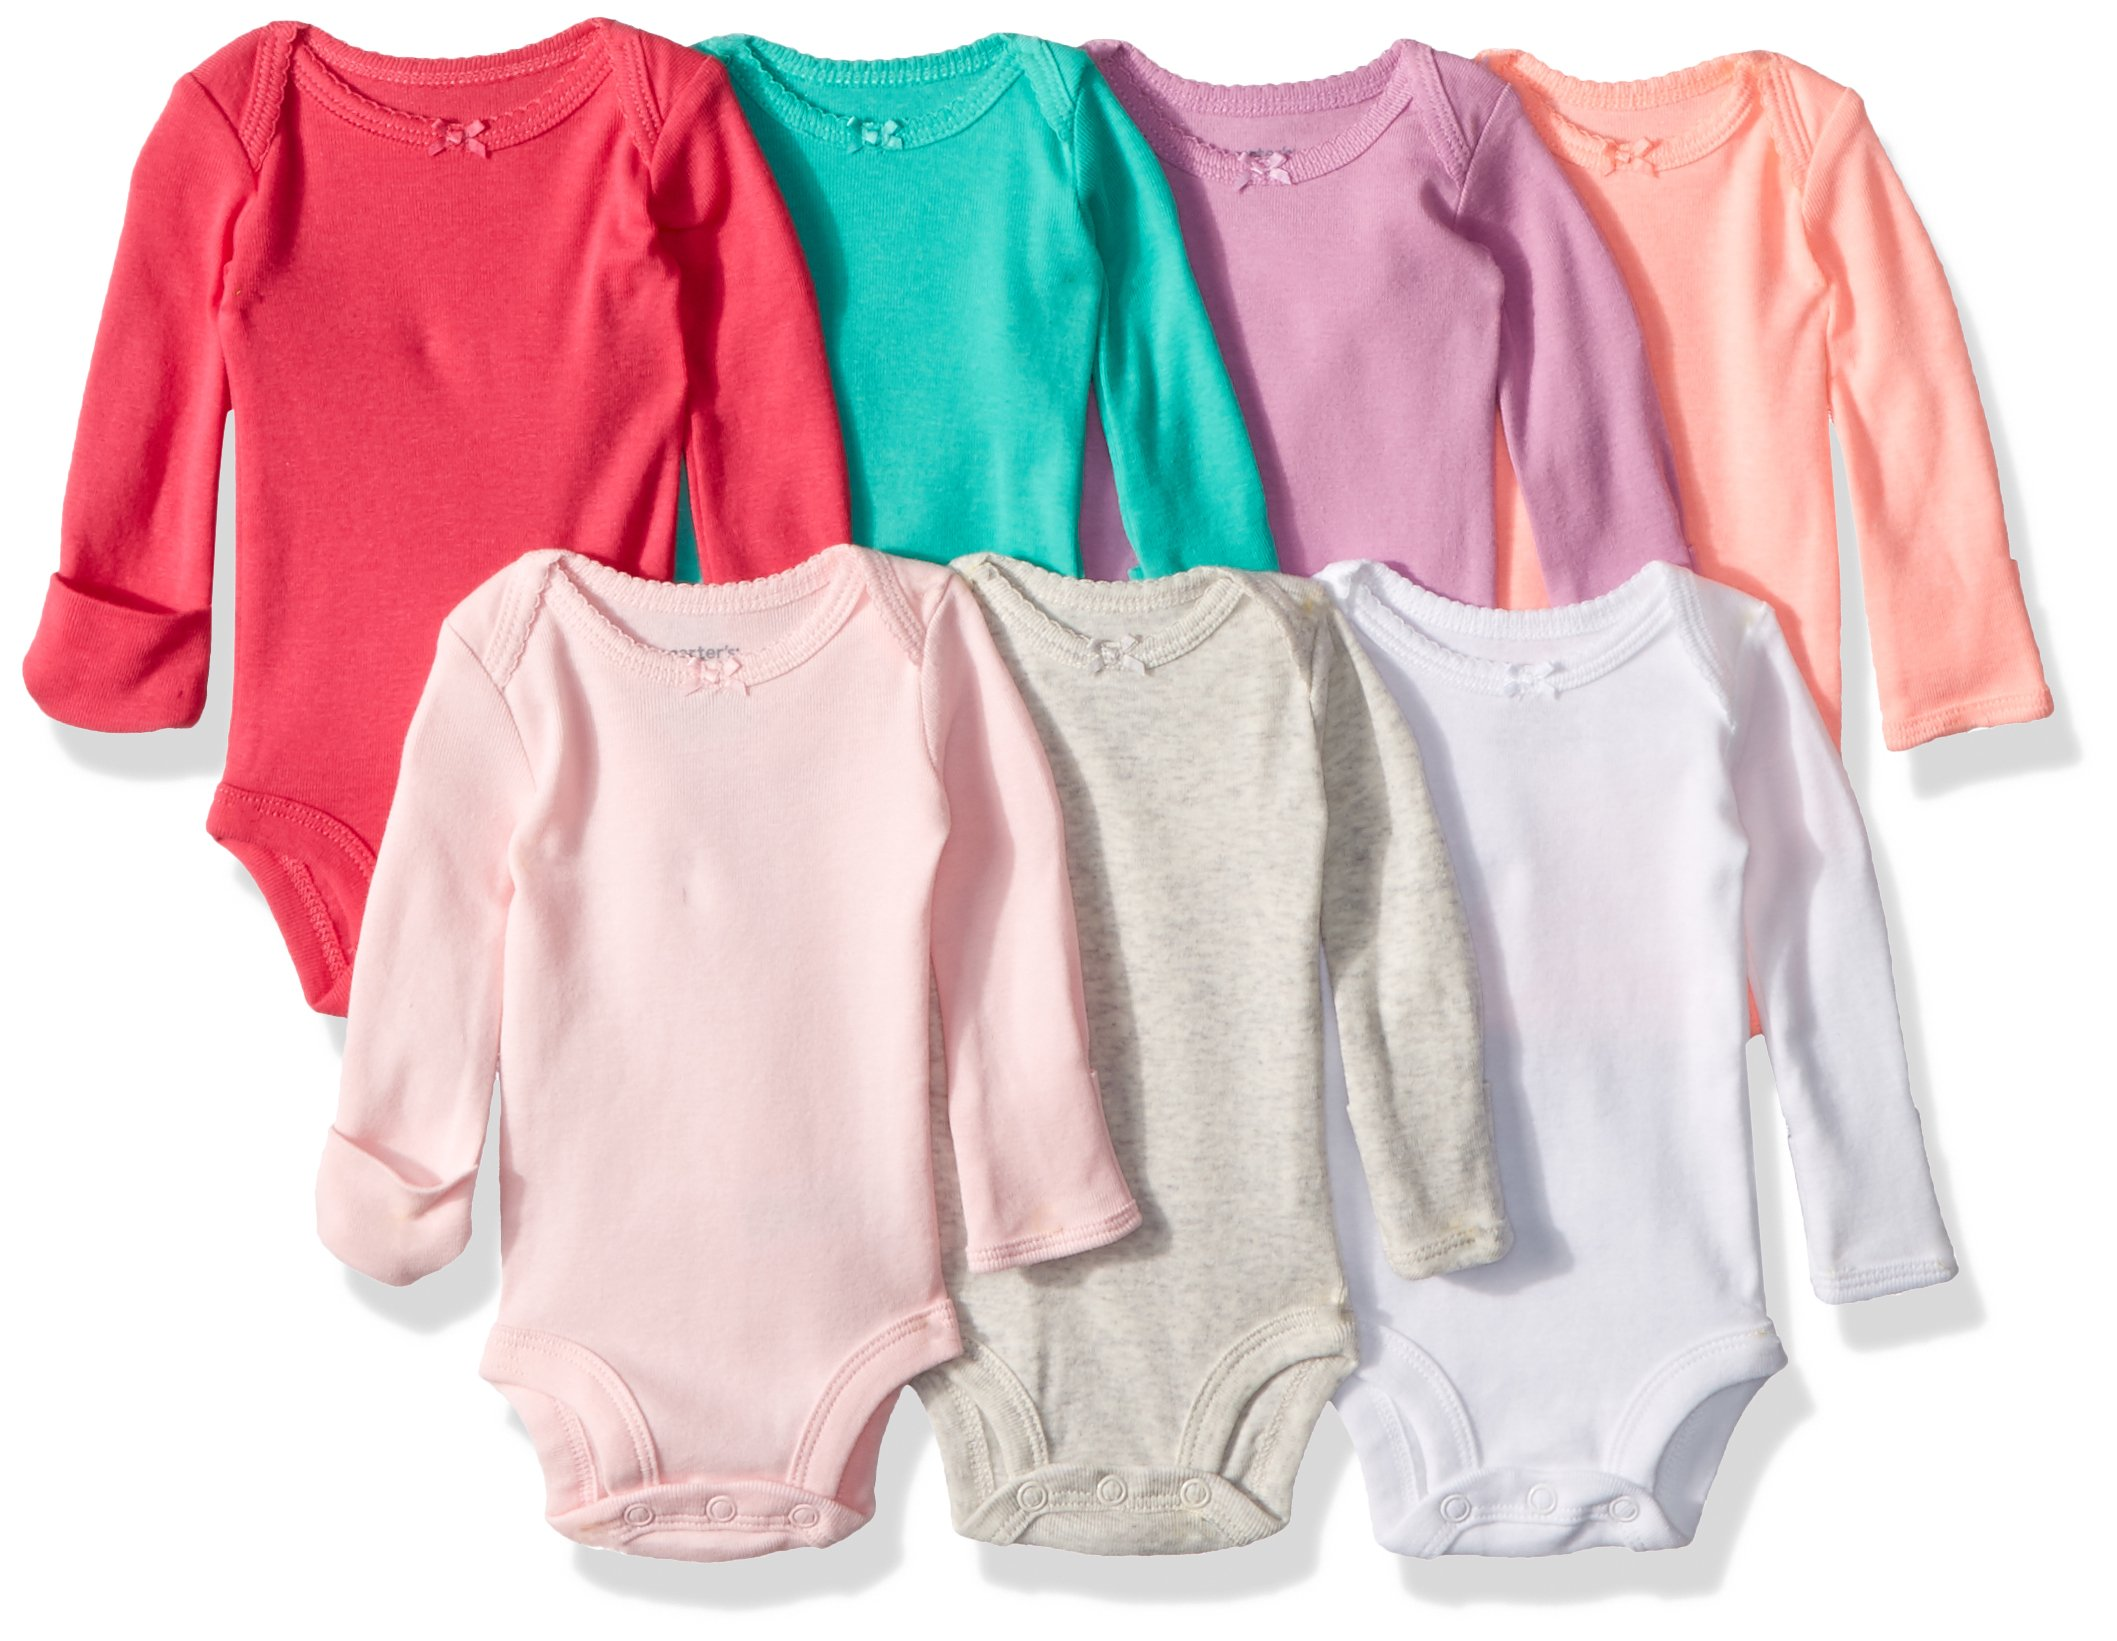 Carter's Baby 7 Pack Long Sleeve Bodysuits, Multi Peach, 3 Months